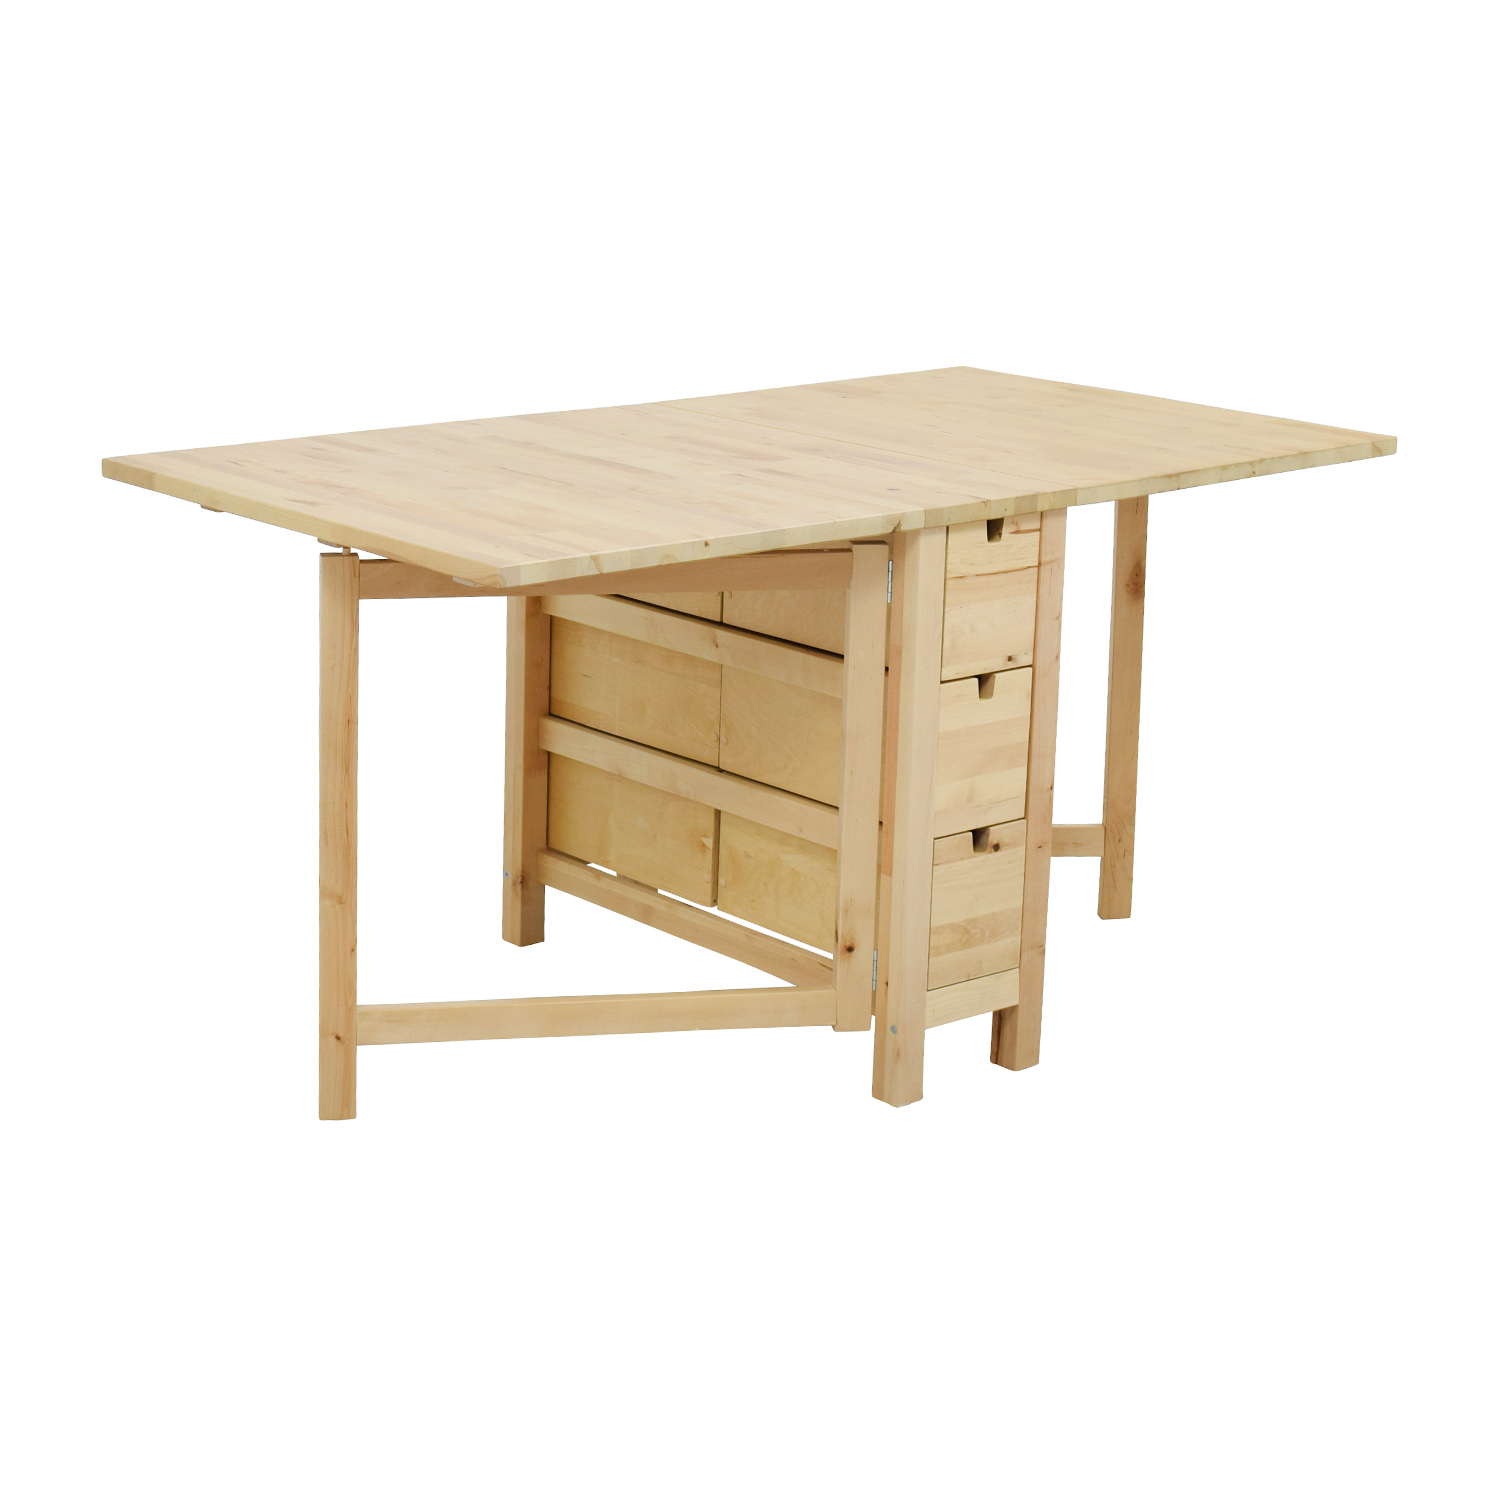 ikea kitchen table with drawers how to reface cabinets 49 off birch norden gateleg drop leaf